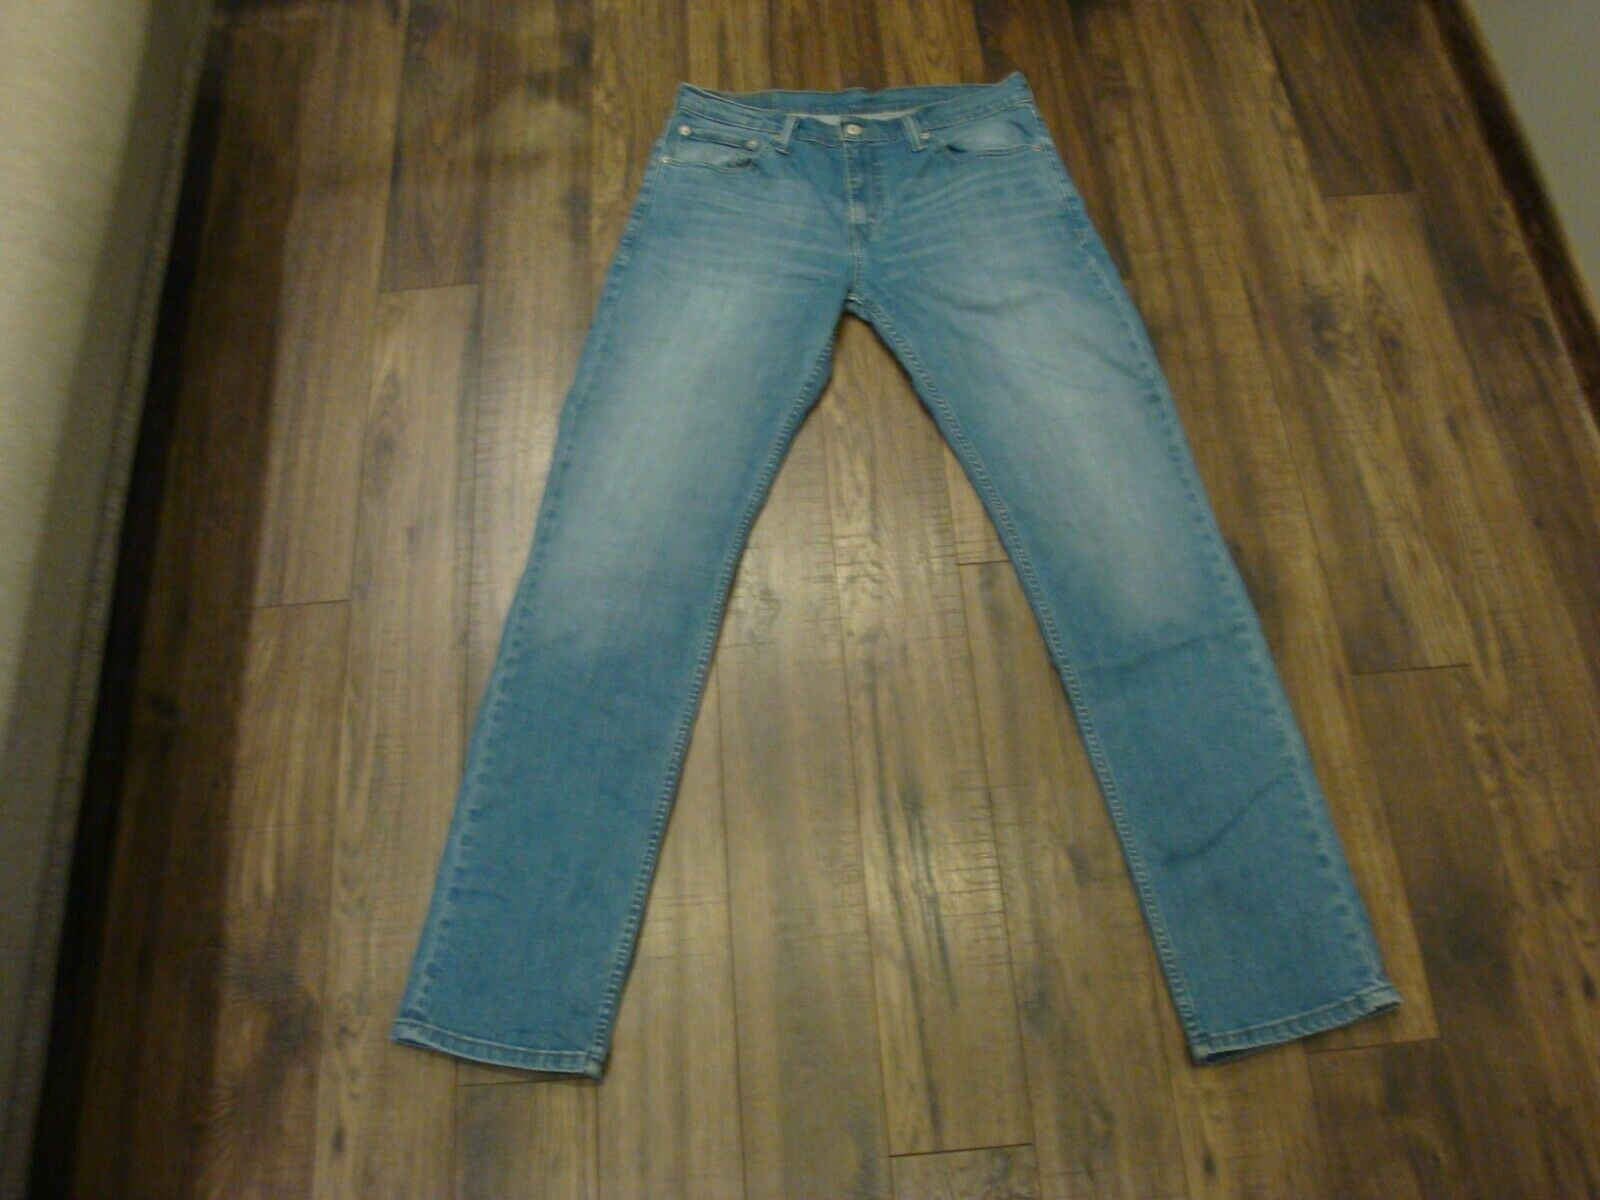 Primary image for Levi's® 511 Mens Jans W33 L34 Ideal Condition 100% Cotton Fast Shipping